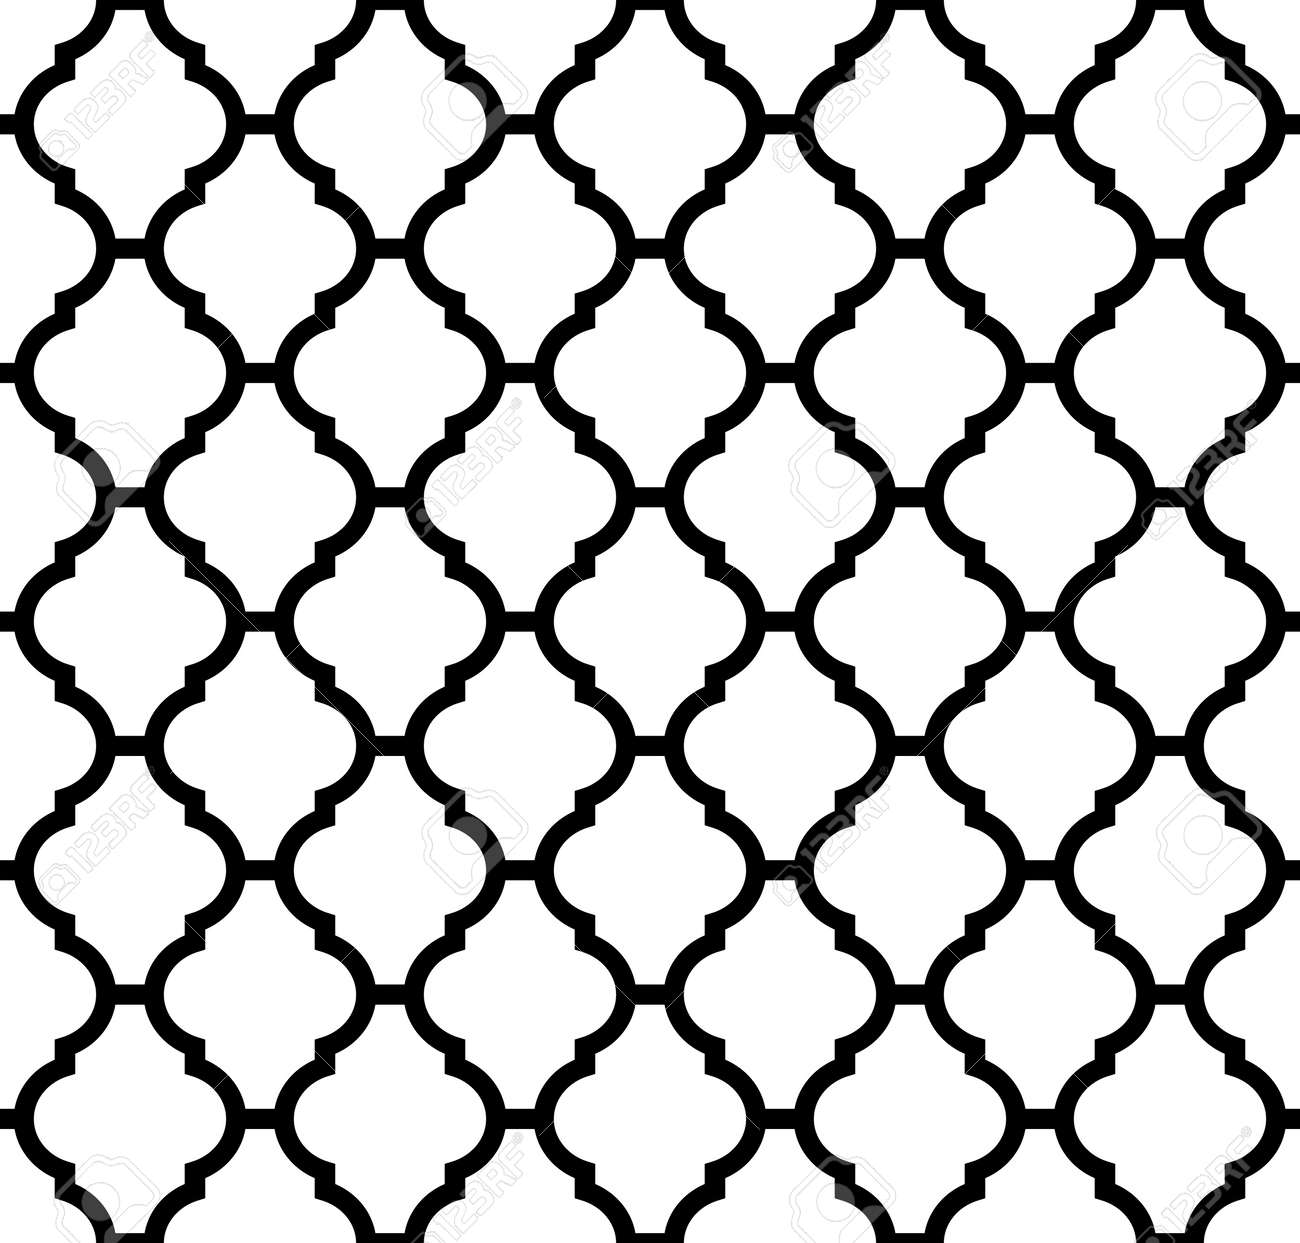 moroccan seamless pattern in black and white royalty free cliparts rh 123rf com islamic geometric patterns vectors islamic geometric patterns vectors